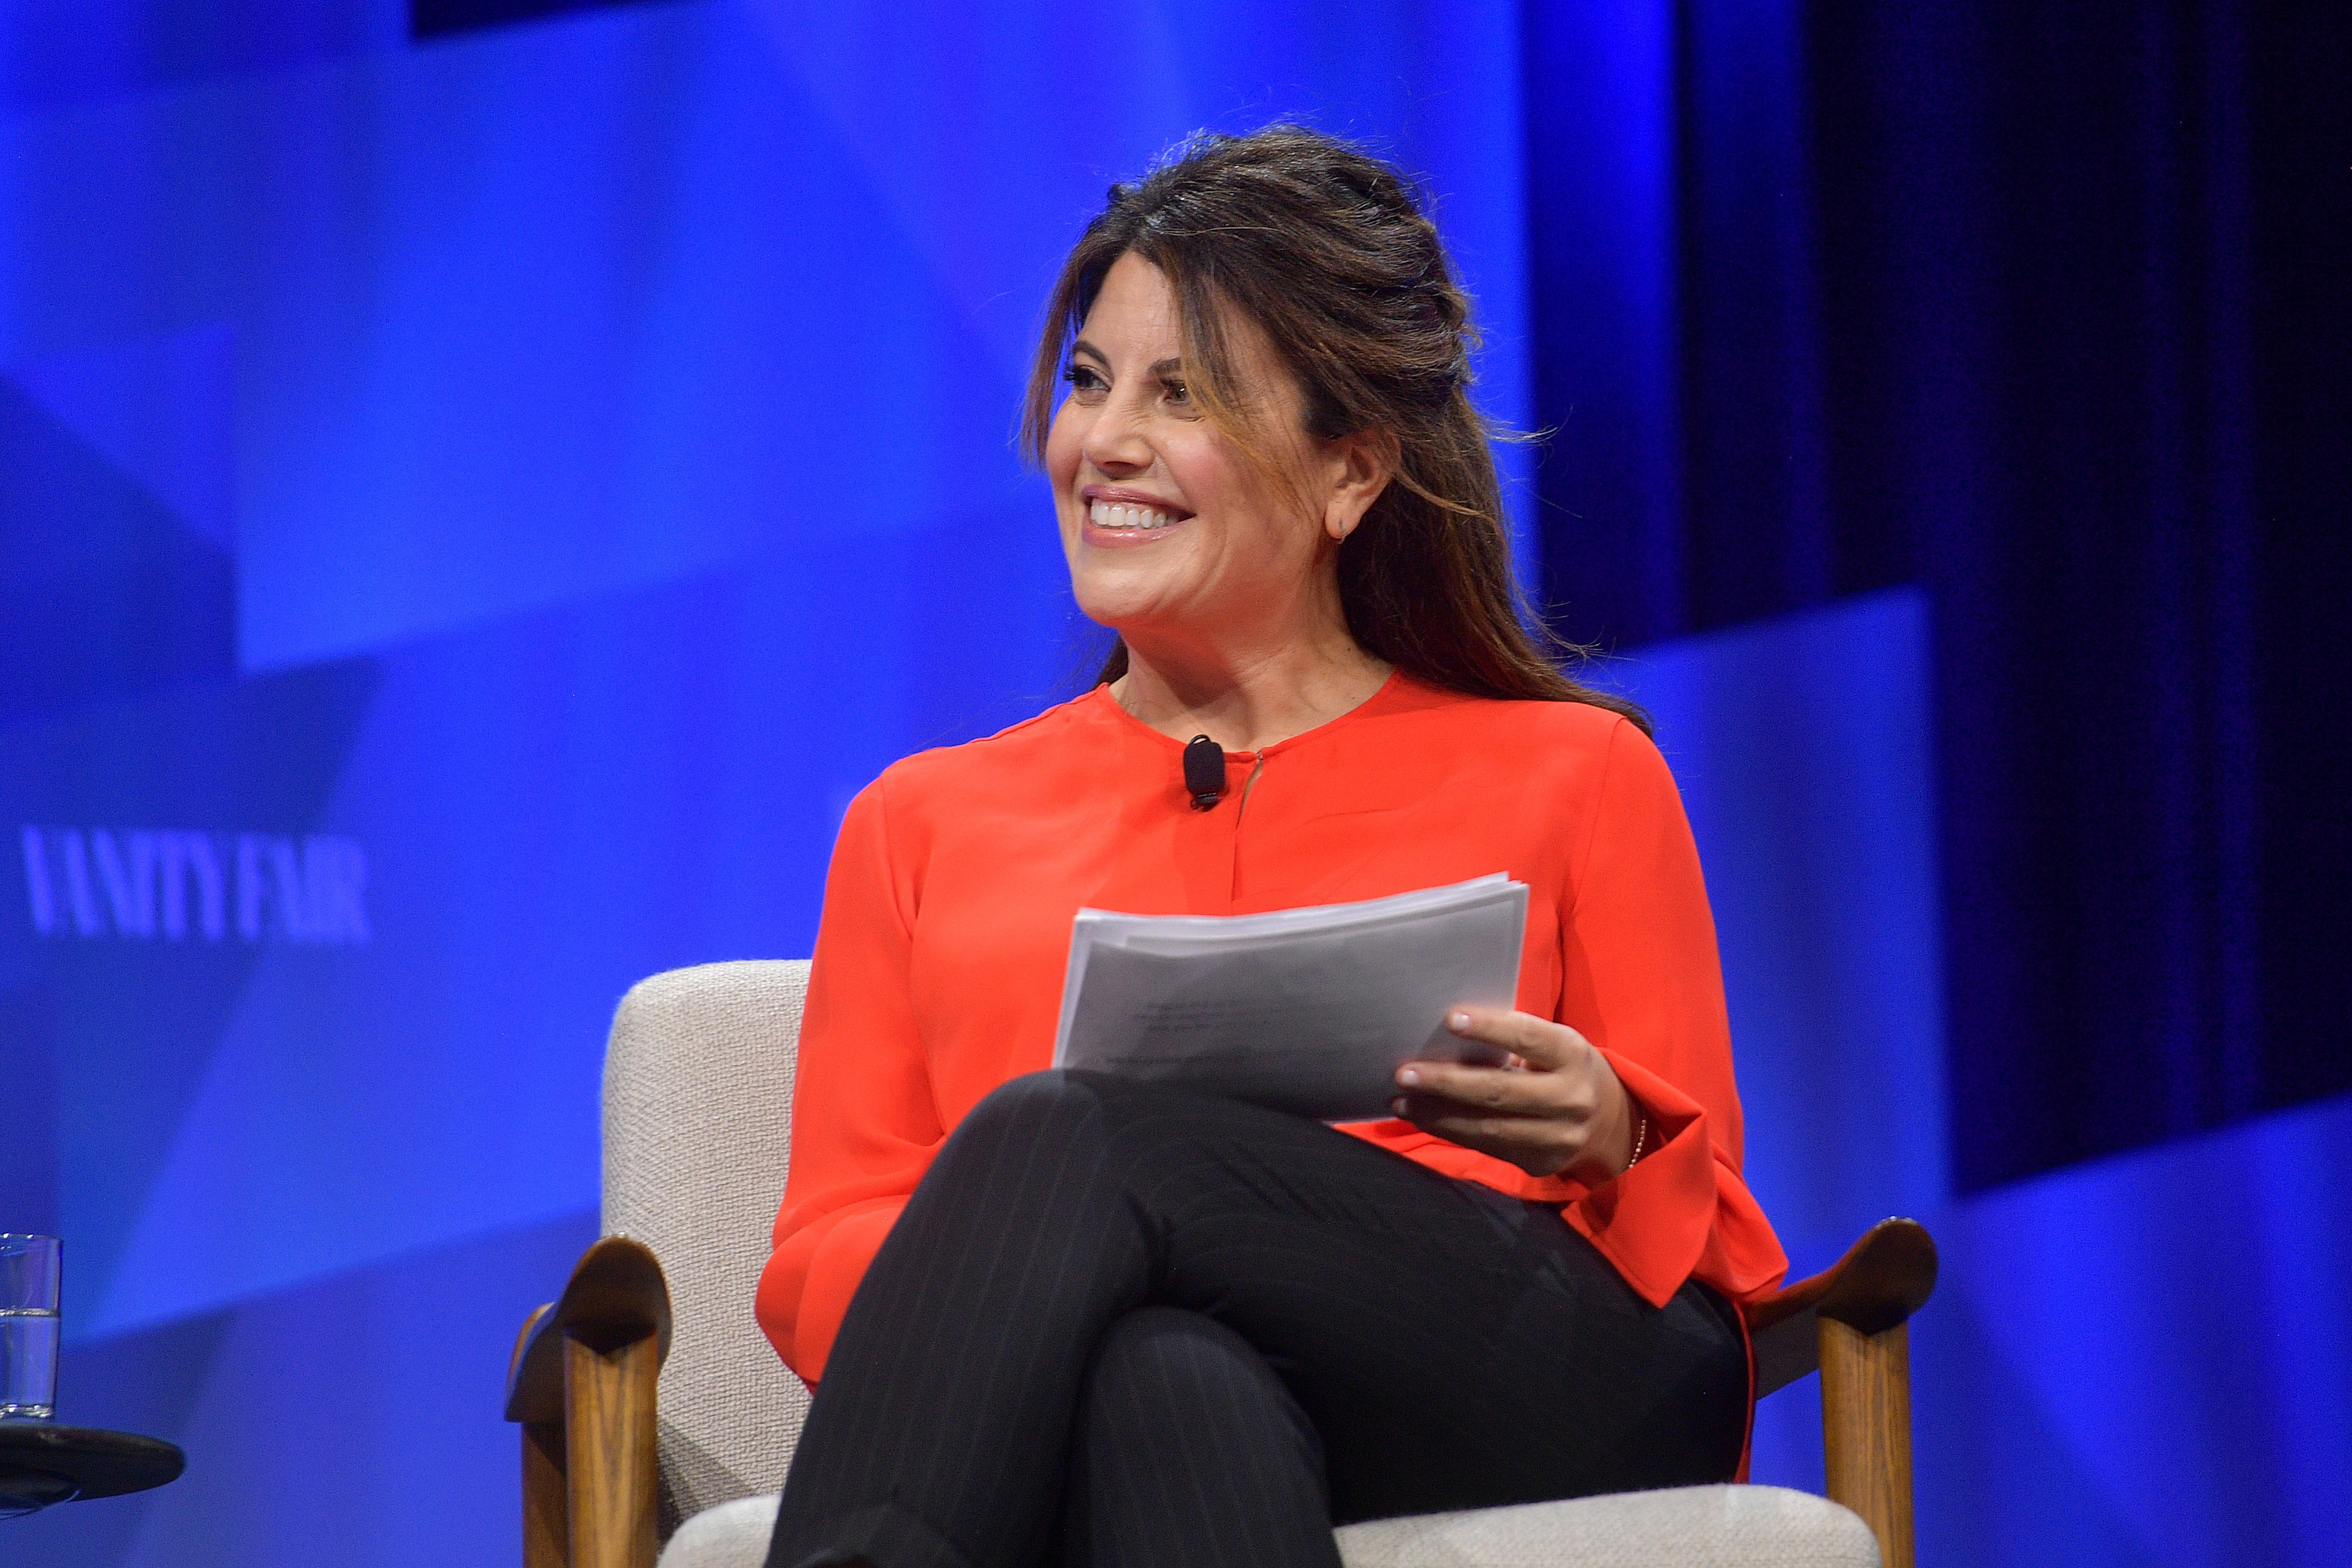 Lewinsky smiles while sitting in a chair and holding a sheath of papers